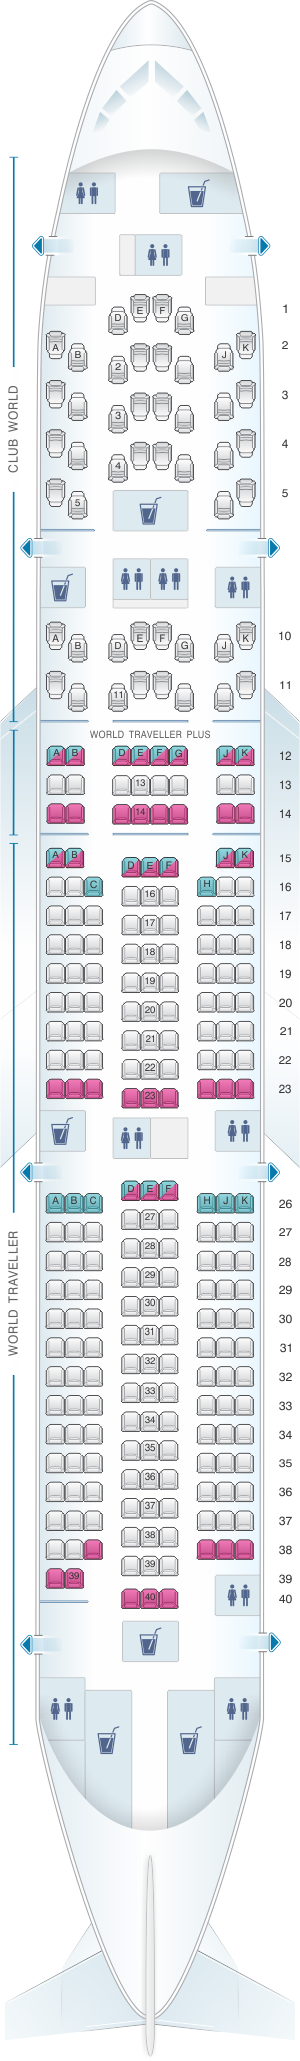 Seat map for British Airways Boeing B777 200 three class